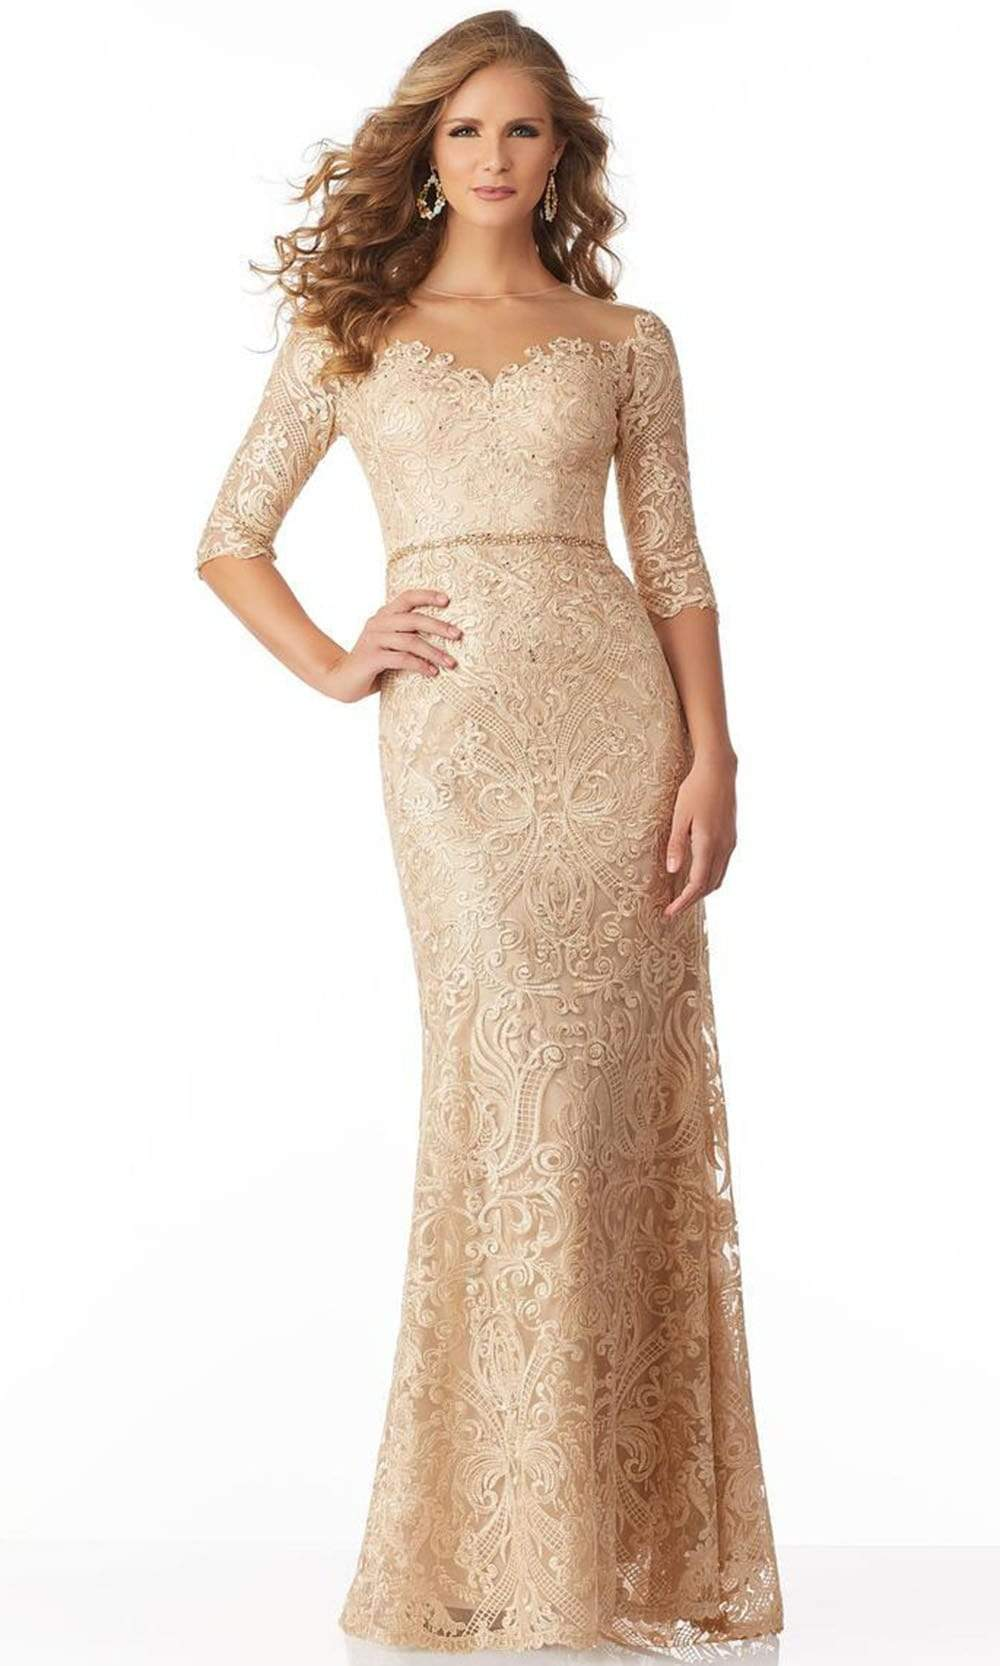 MGNY By Mori Lee - 71801 Elbow Sleeve Beaded Embroidery Evening Gown Mother of the Bride Dresses 00 / Champagne